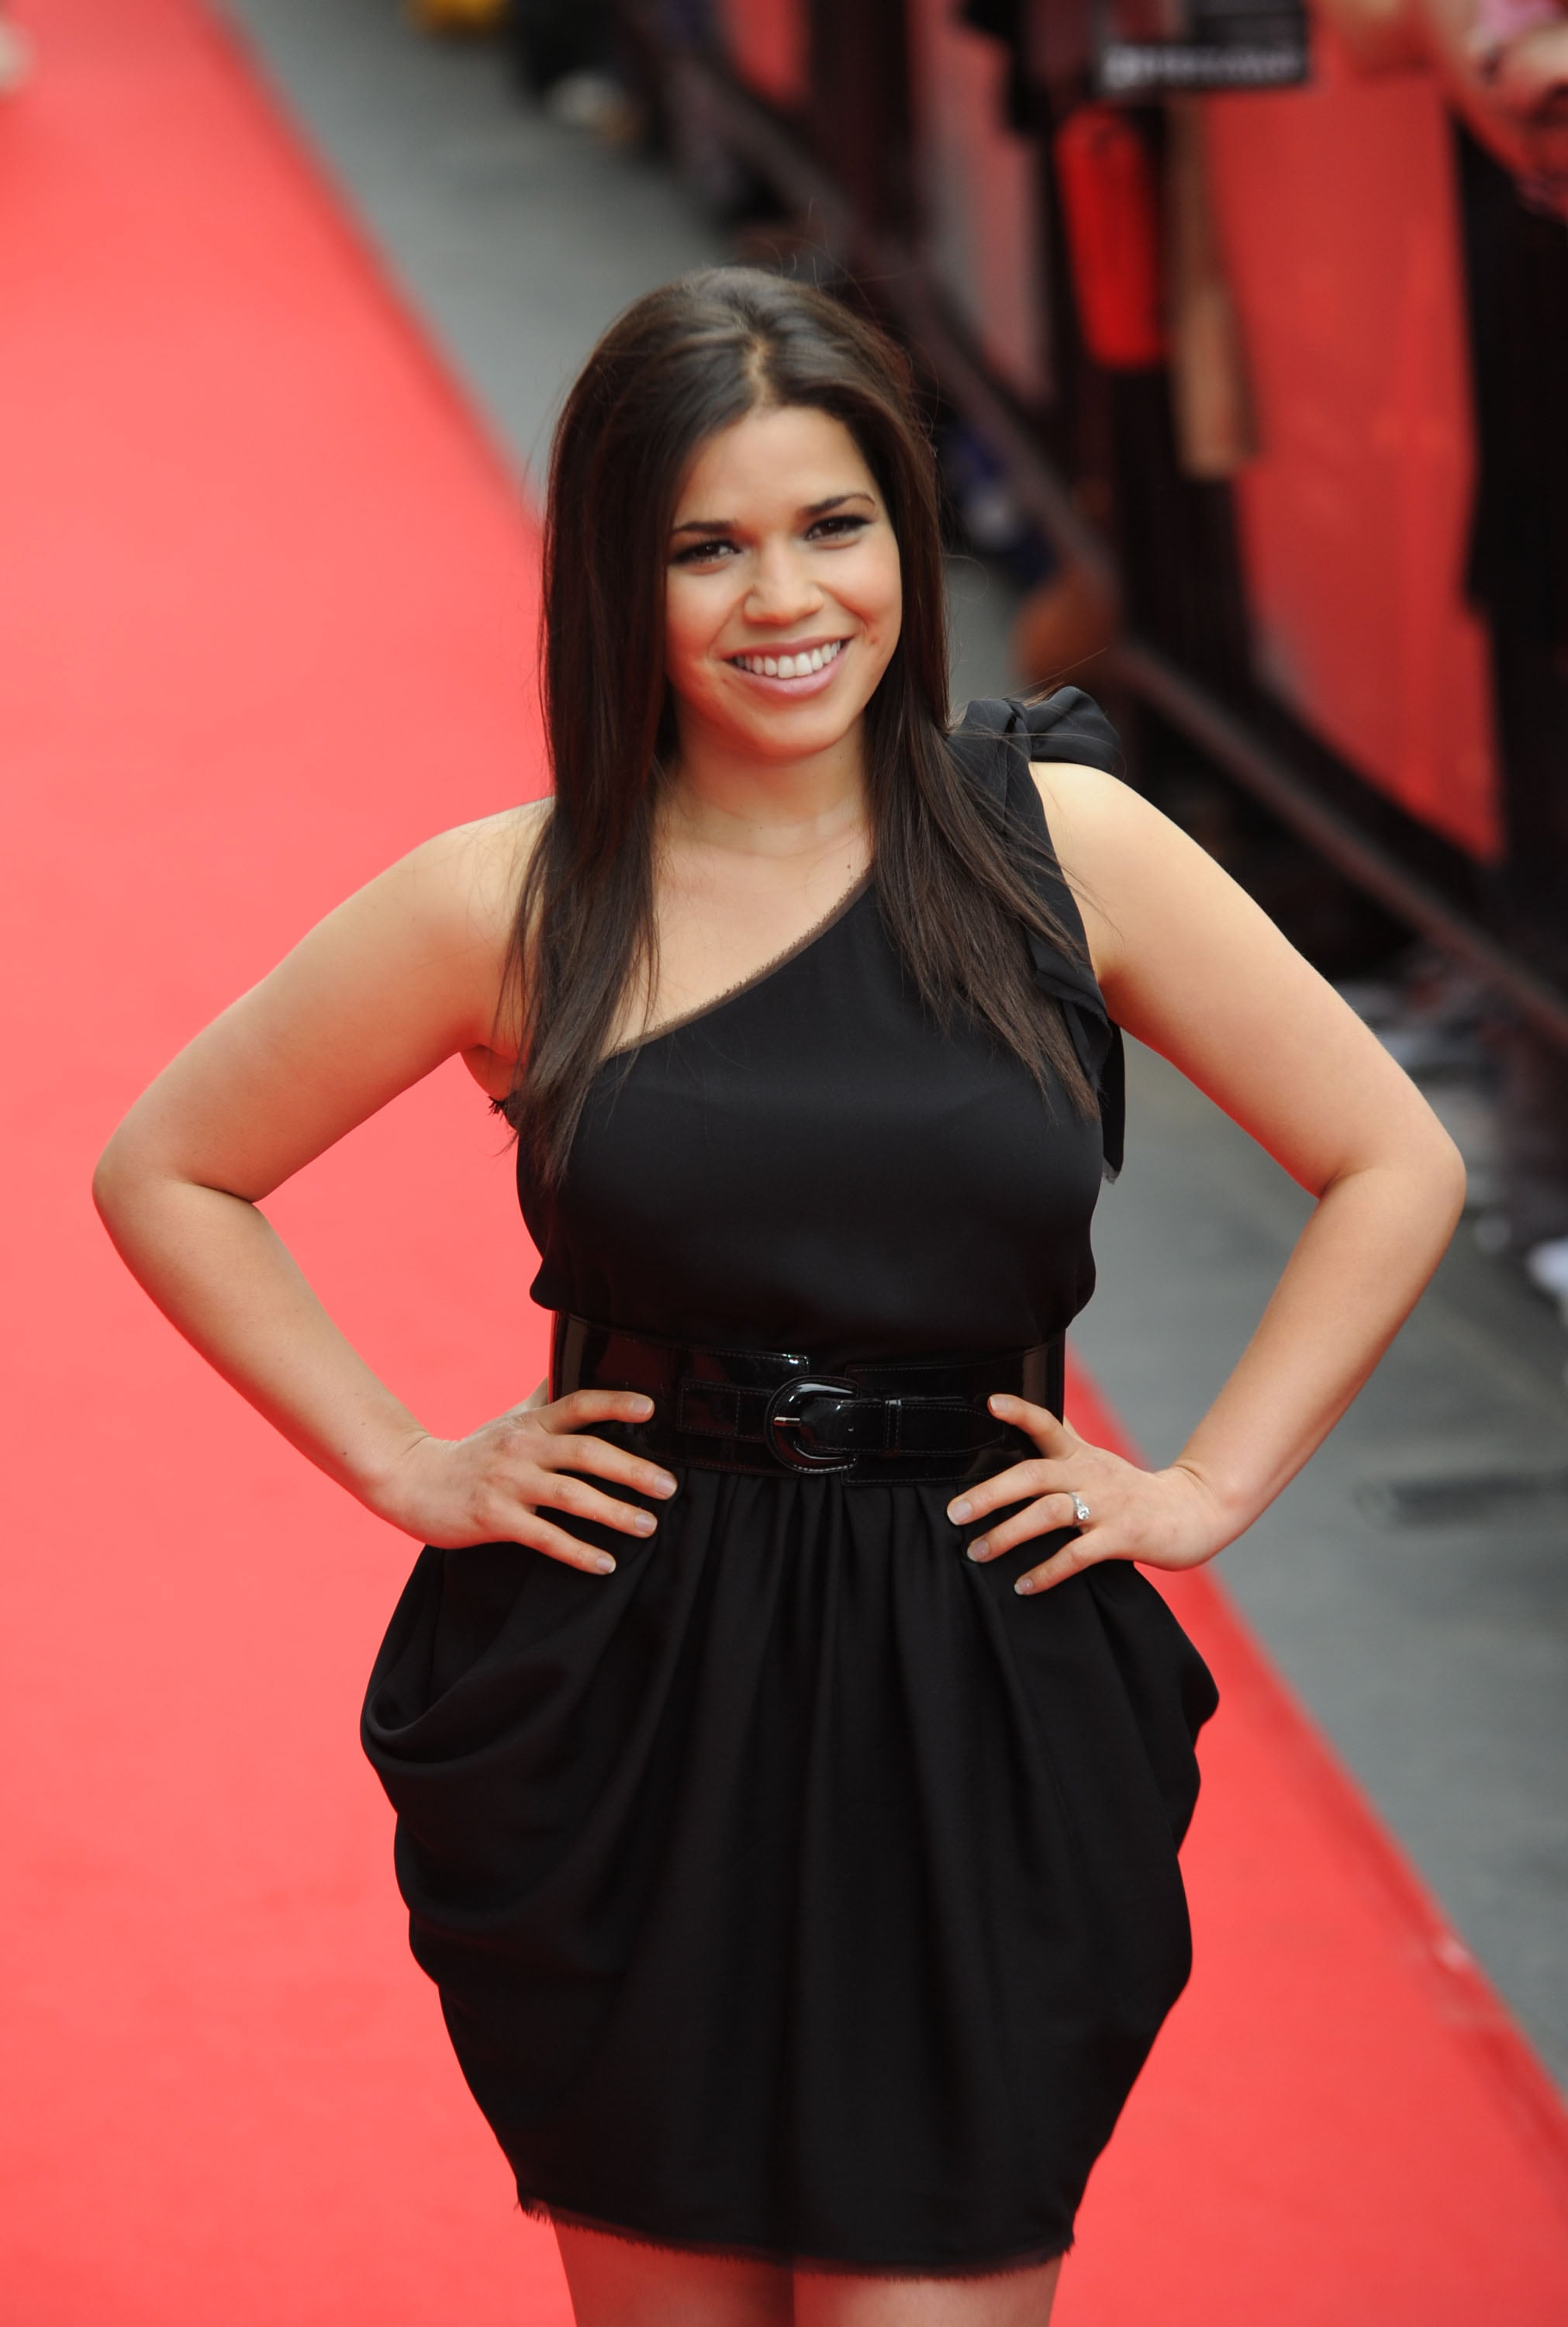 America Ferrera Engaged To Boyfriend Ryan Piers Williams